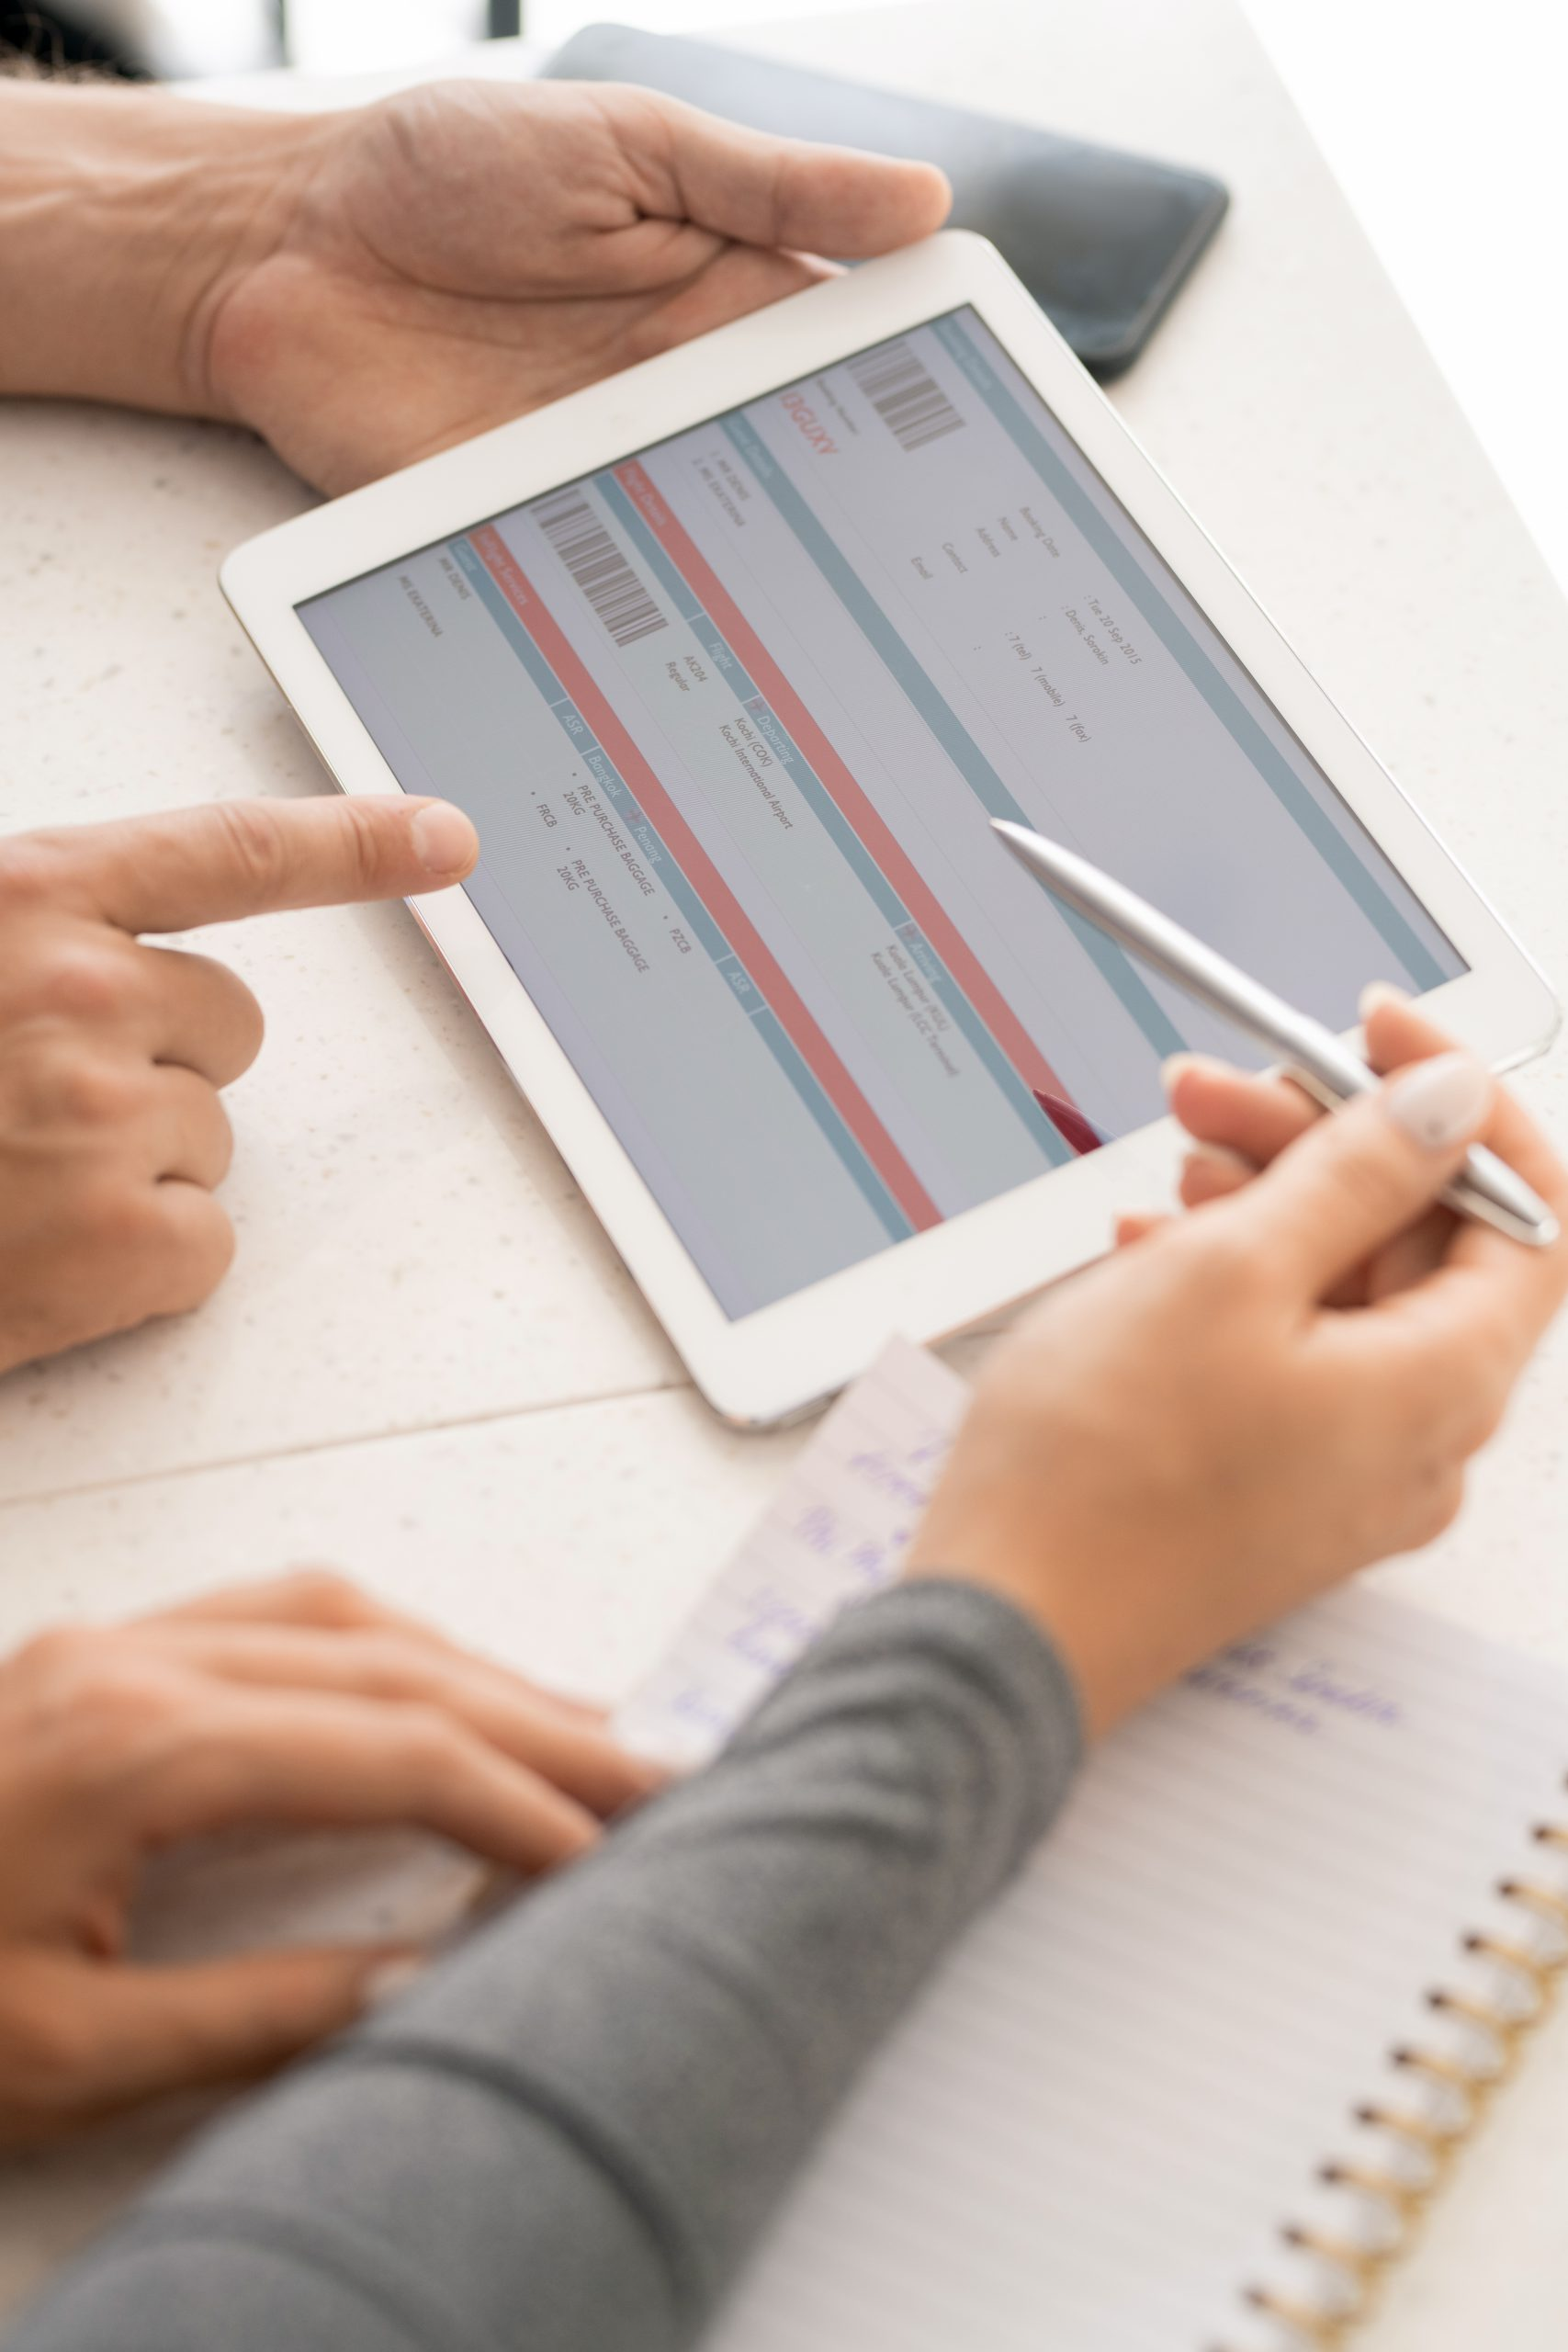 Hands of two young contemporary colleagues discussing online financial information in digital tablet at working meeting